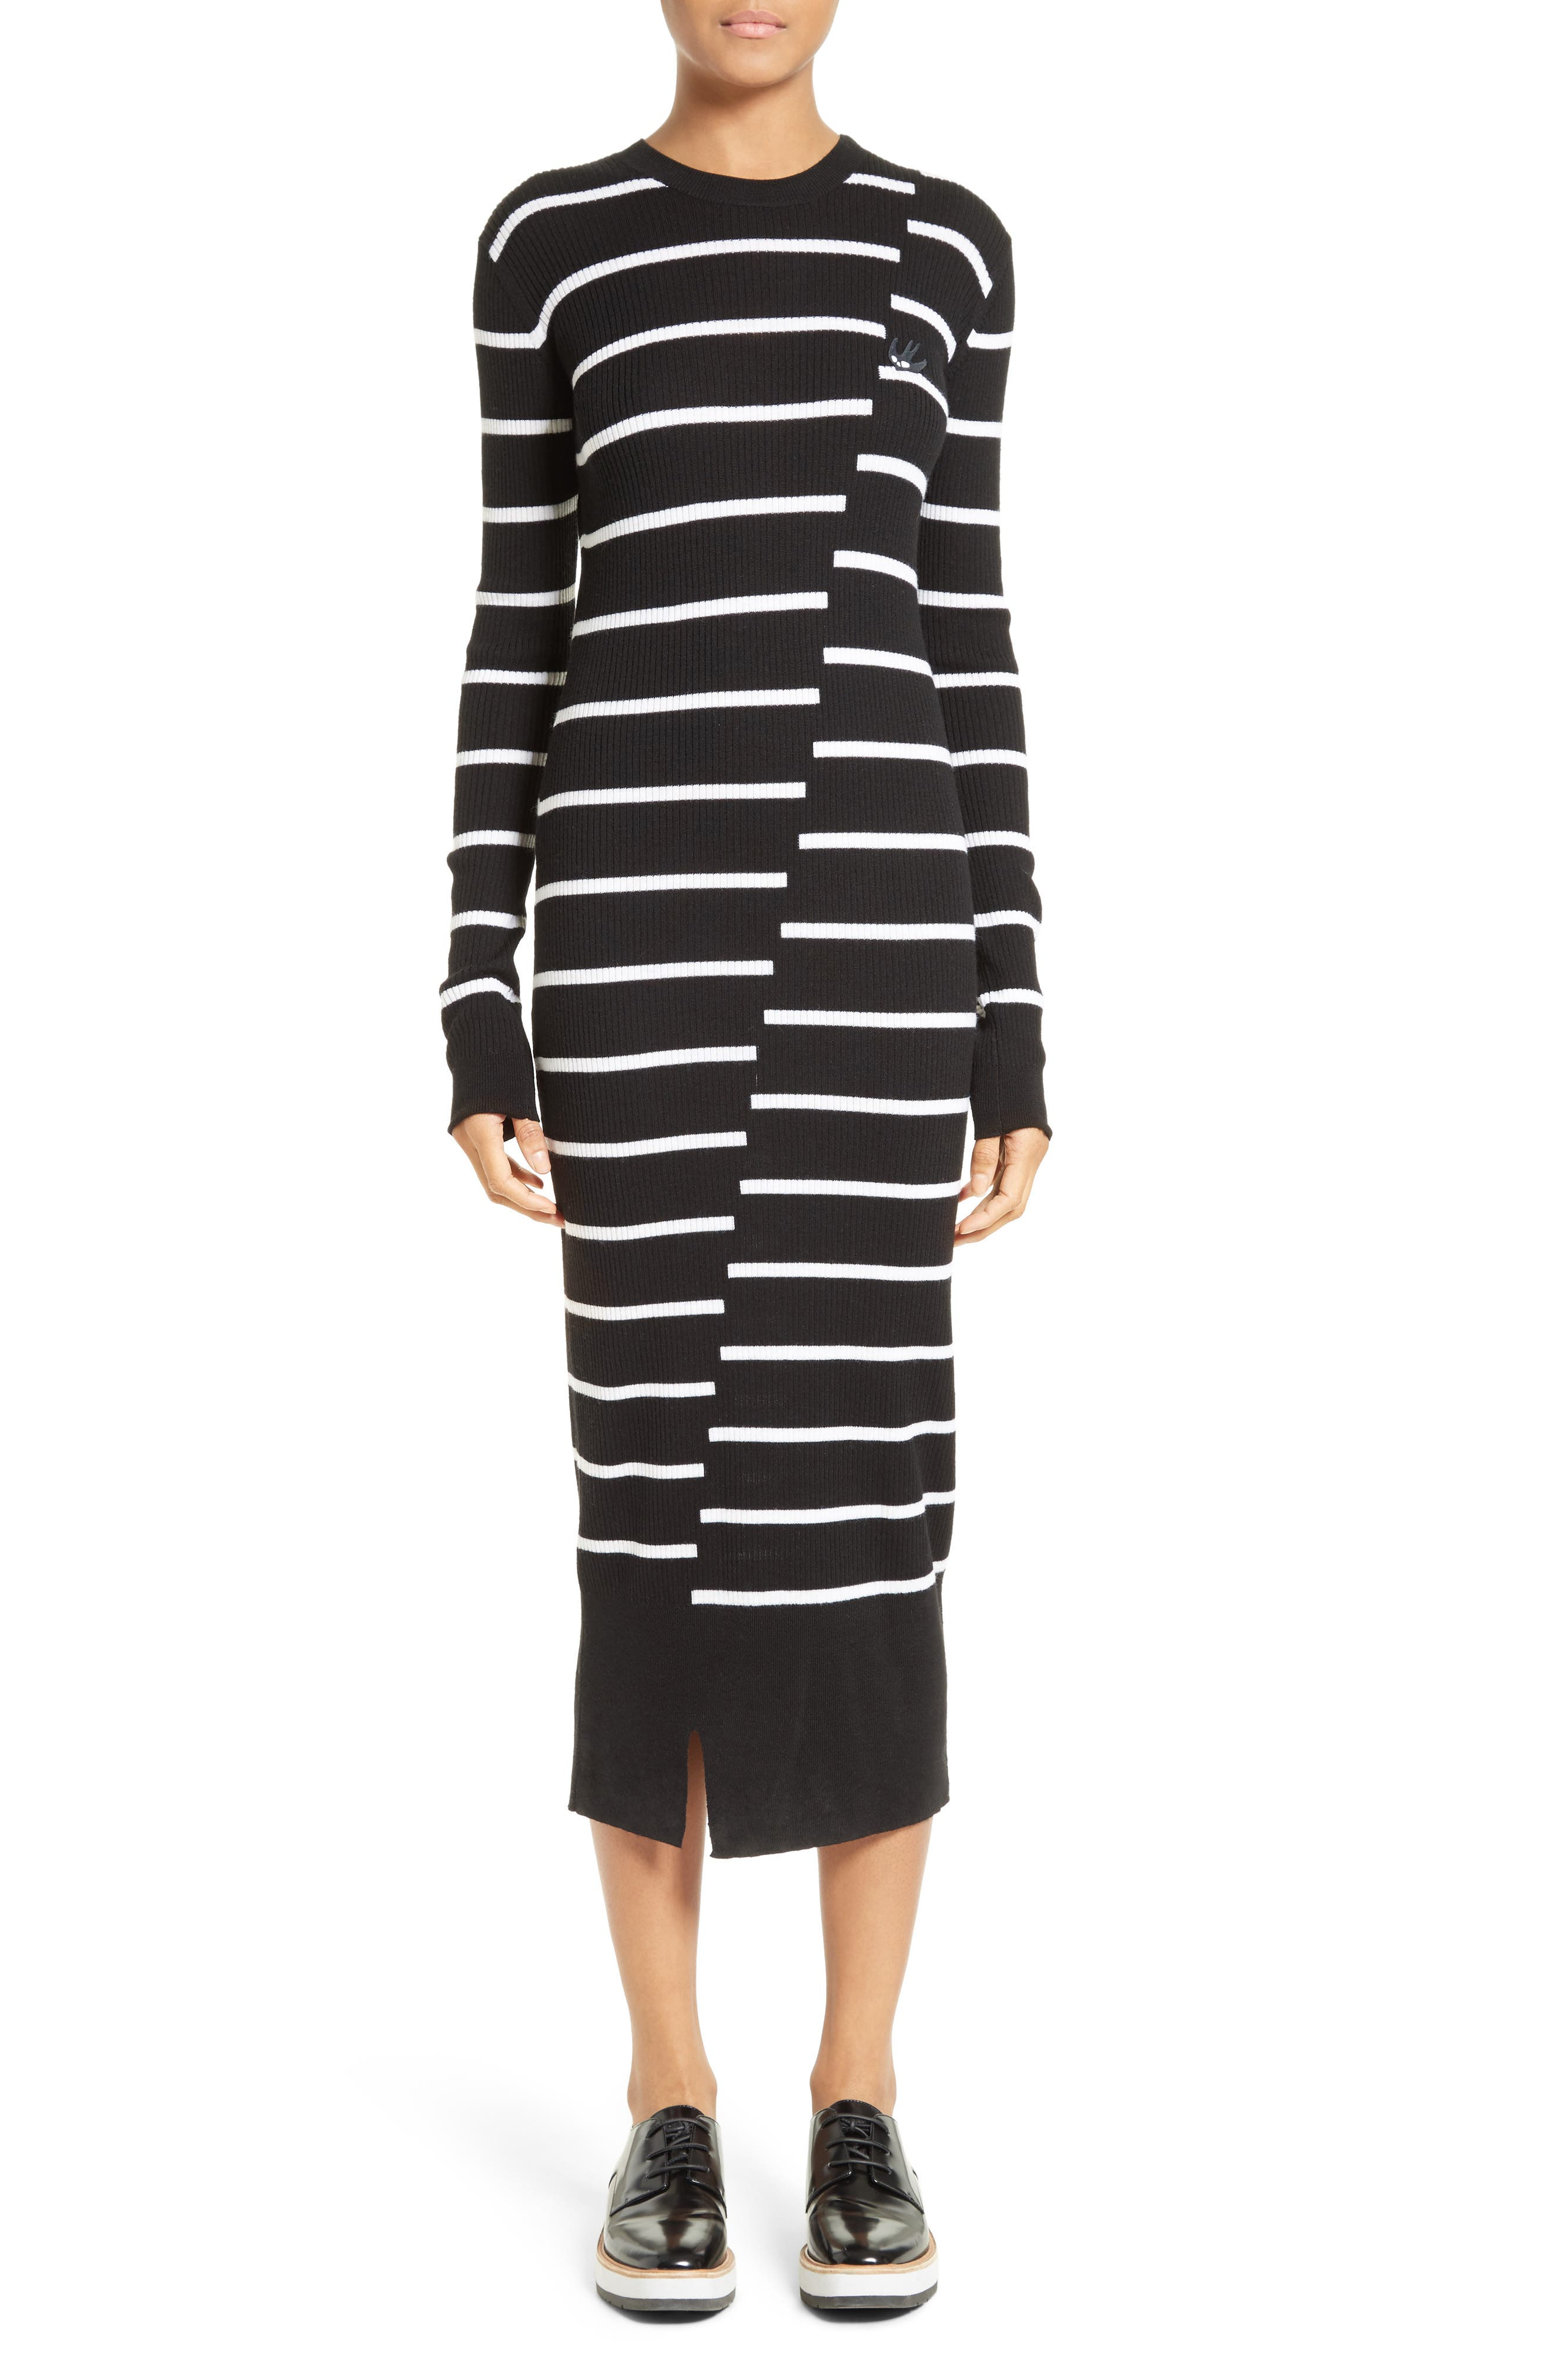 Distort Stripe Wool Sweater Dress,                             Main thumbnail 1, color,                             Black/ White